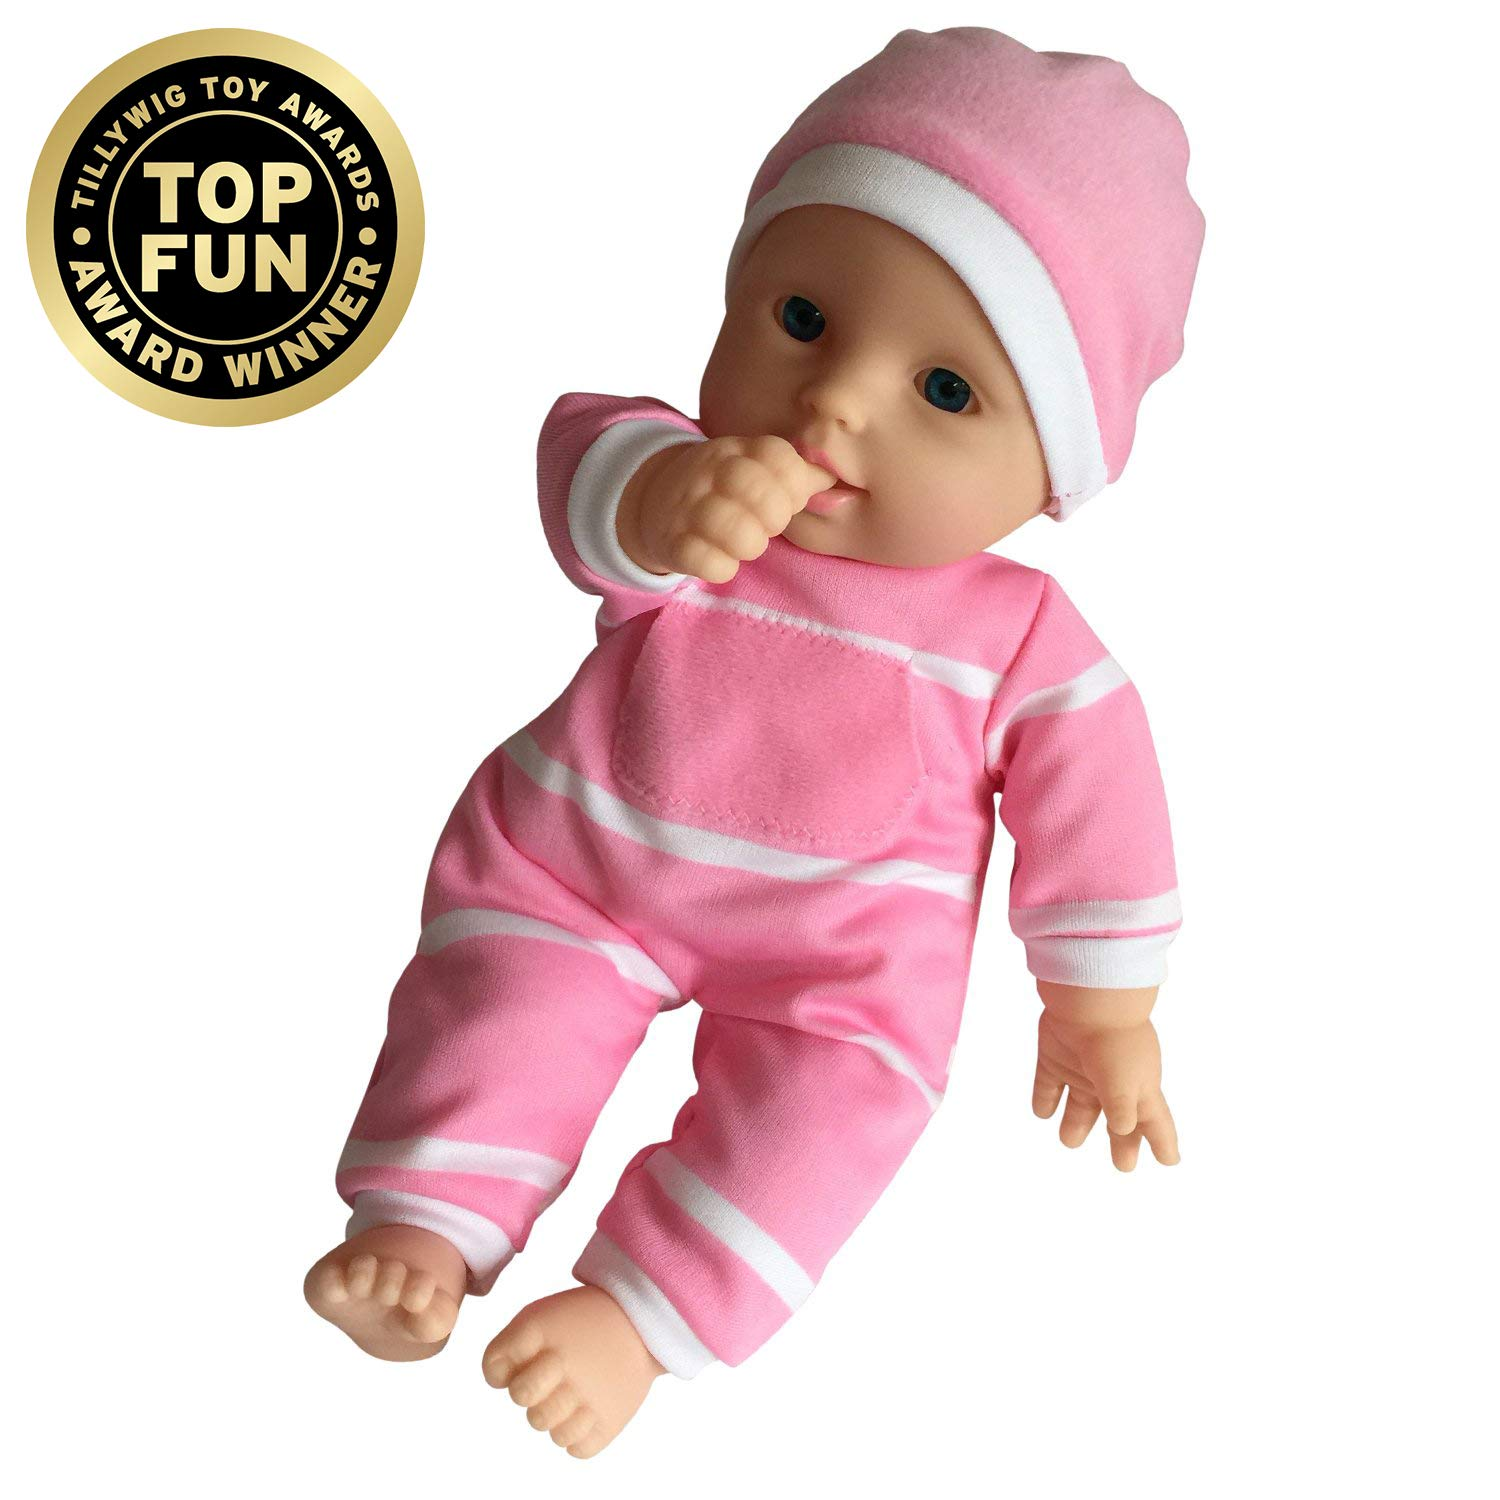 11 inch Soft Body Doll in Gift Box - Award Winner & Toy 11'' Baby Doll (Caucasian) by The New York Doll Collection